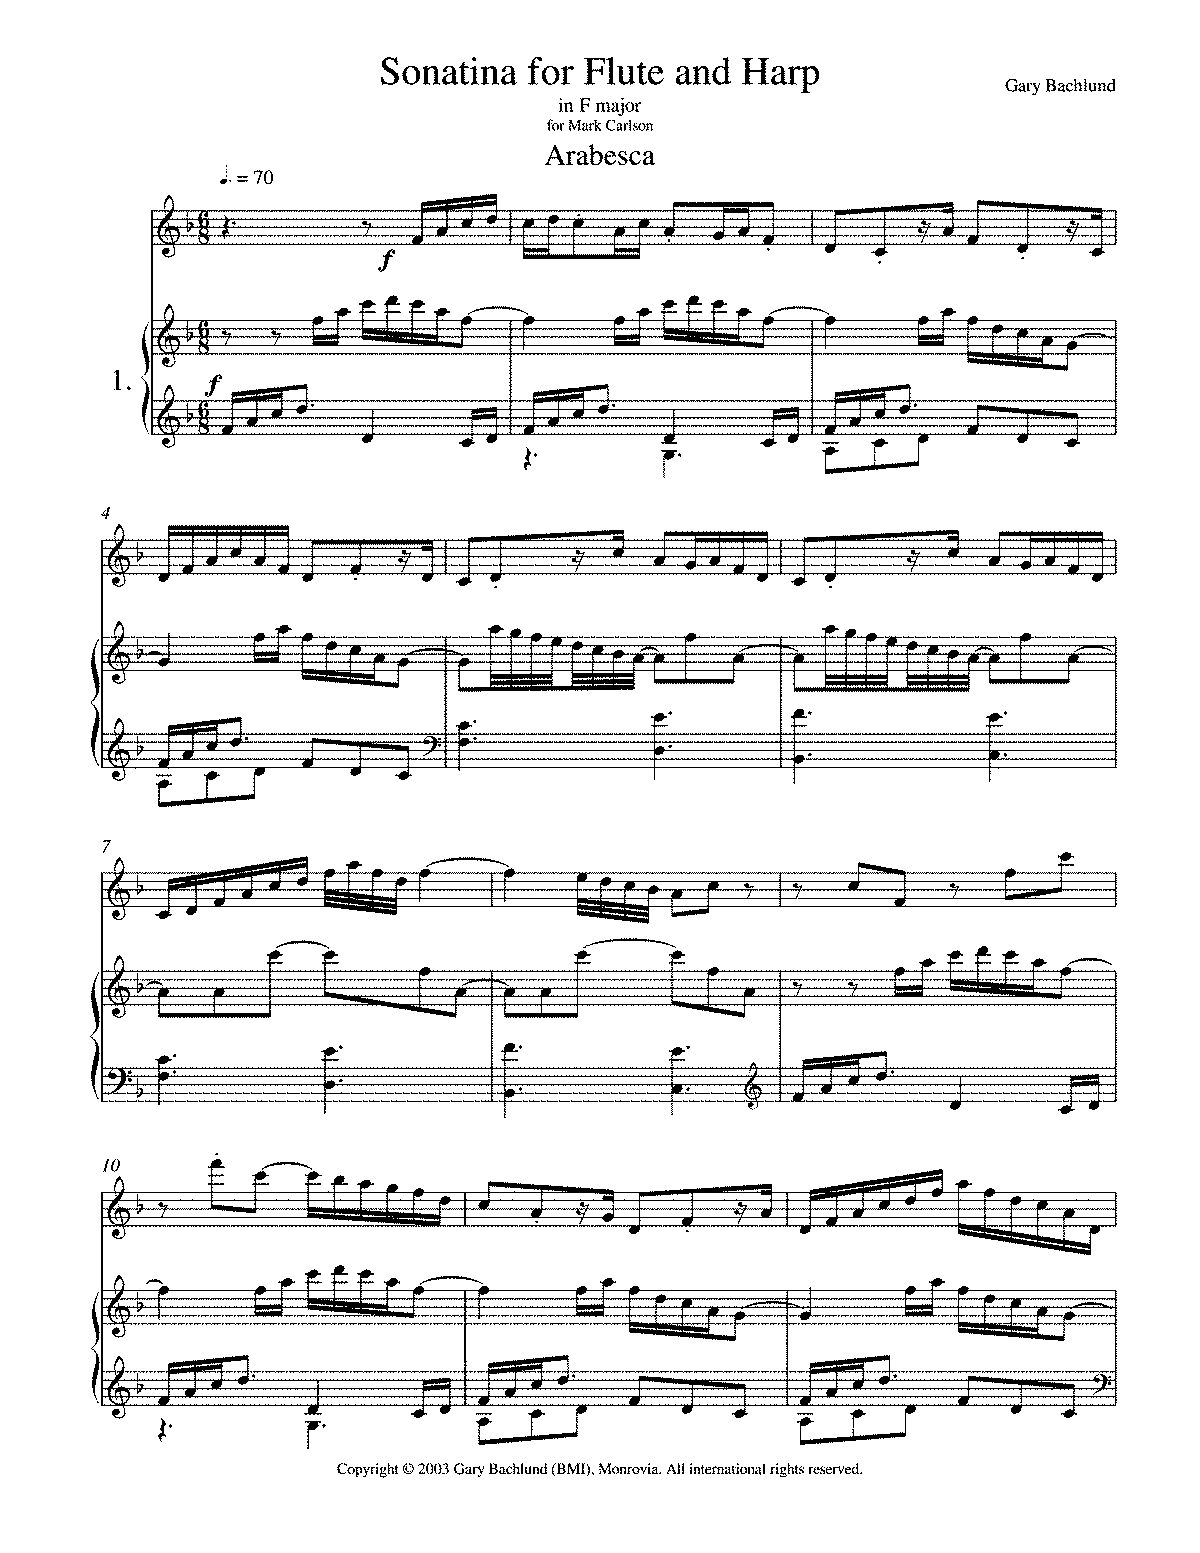 PMLP518048-Sontina for Flute and Harp in F major.pdf